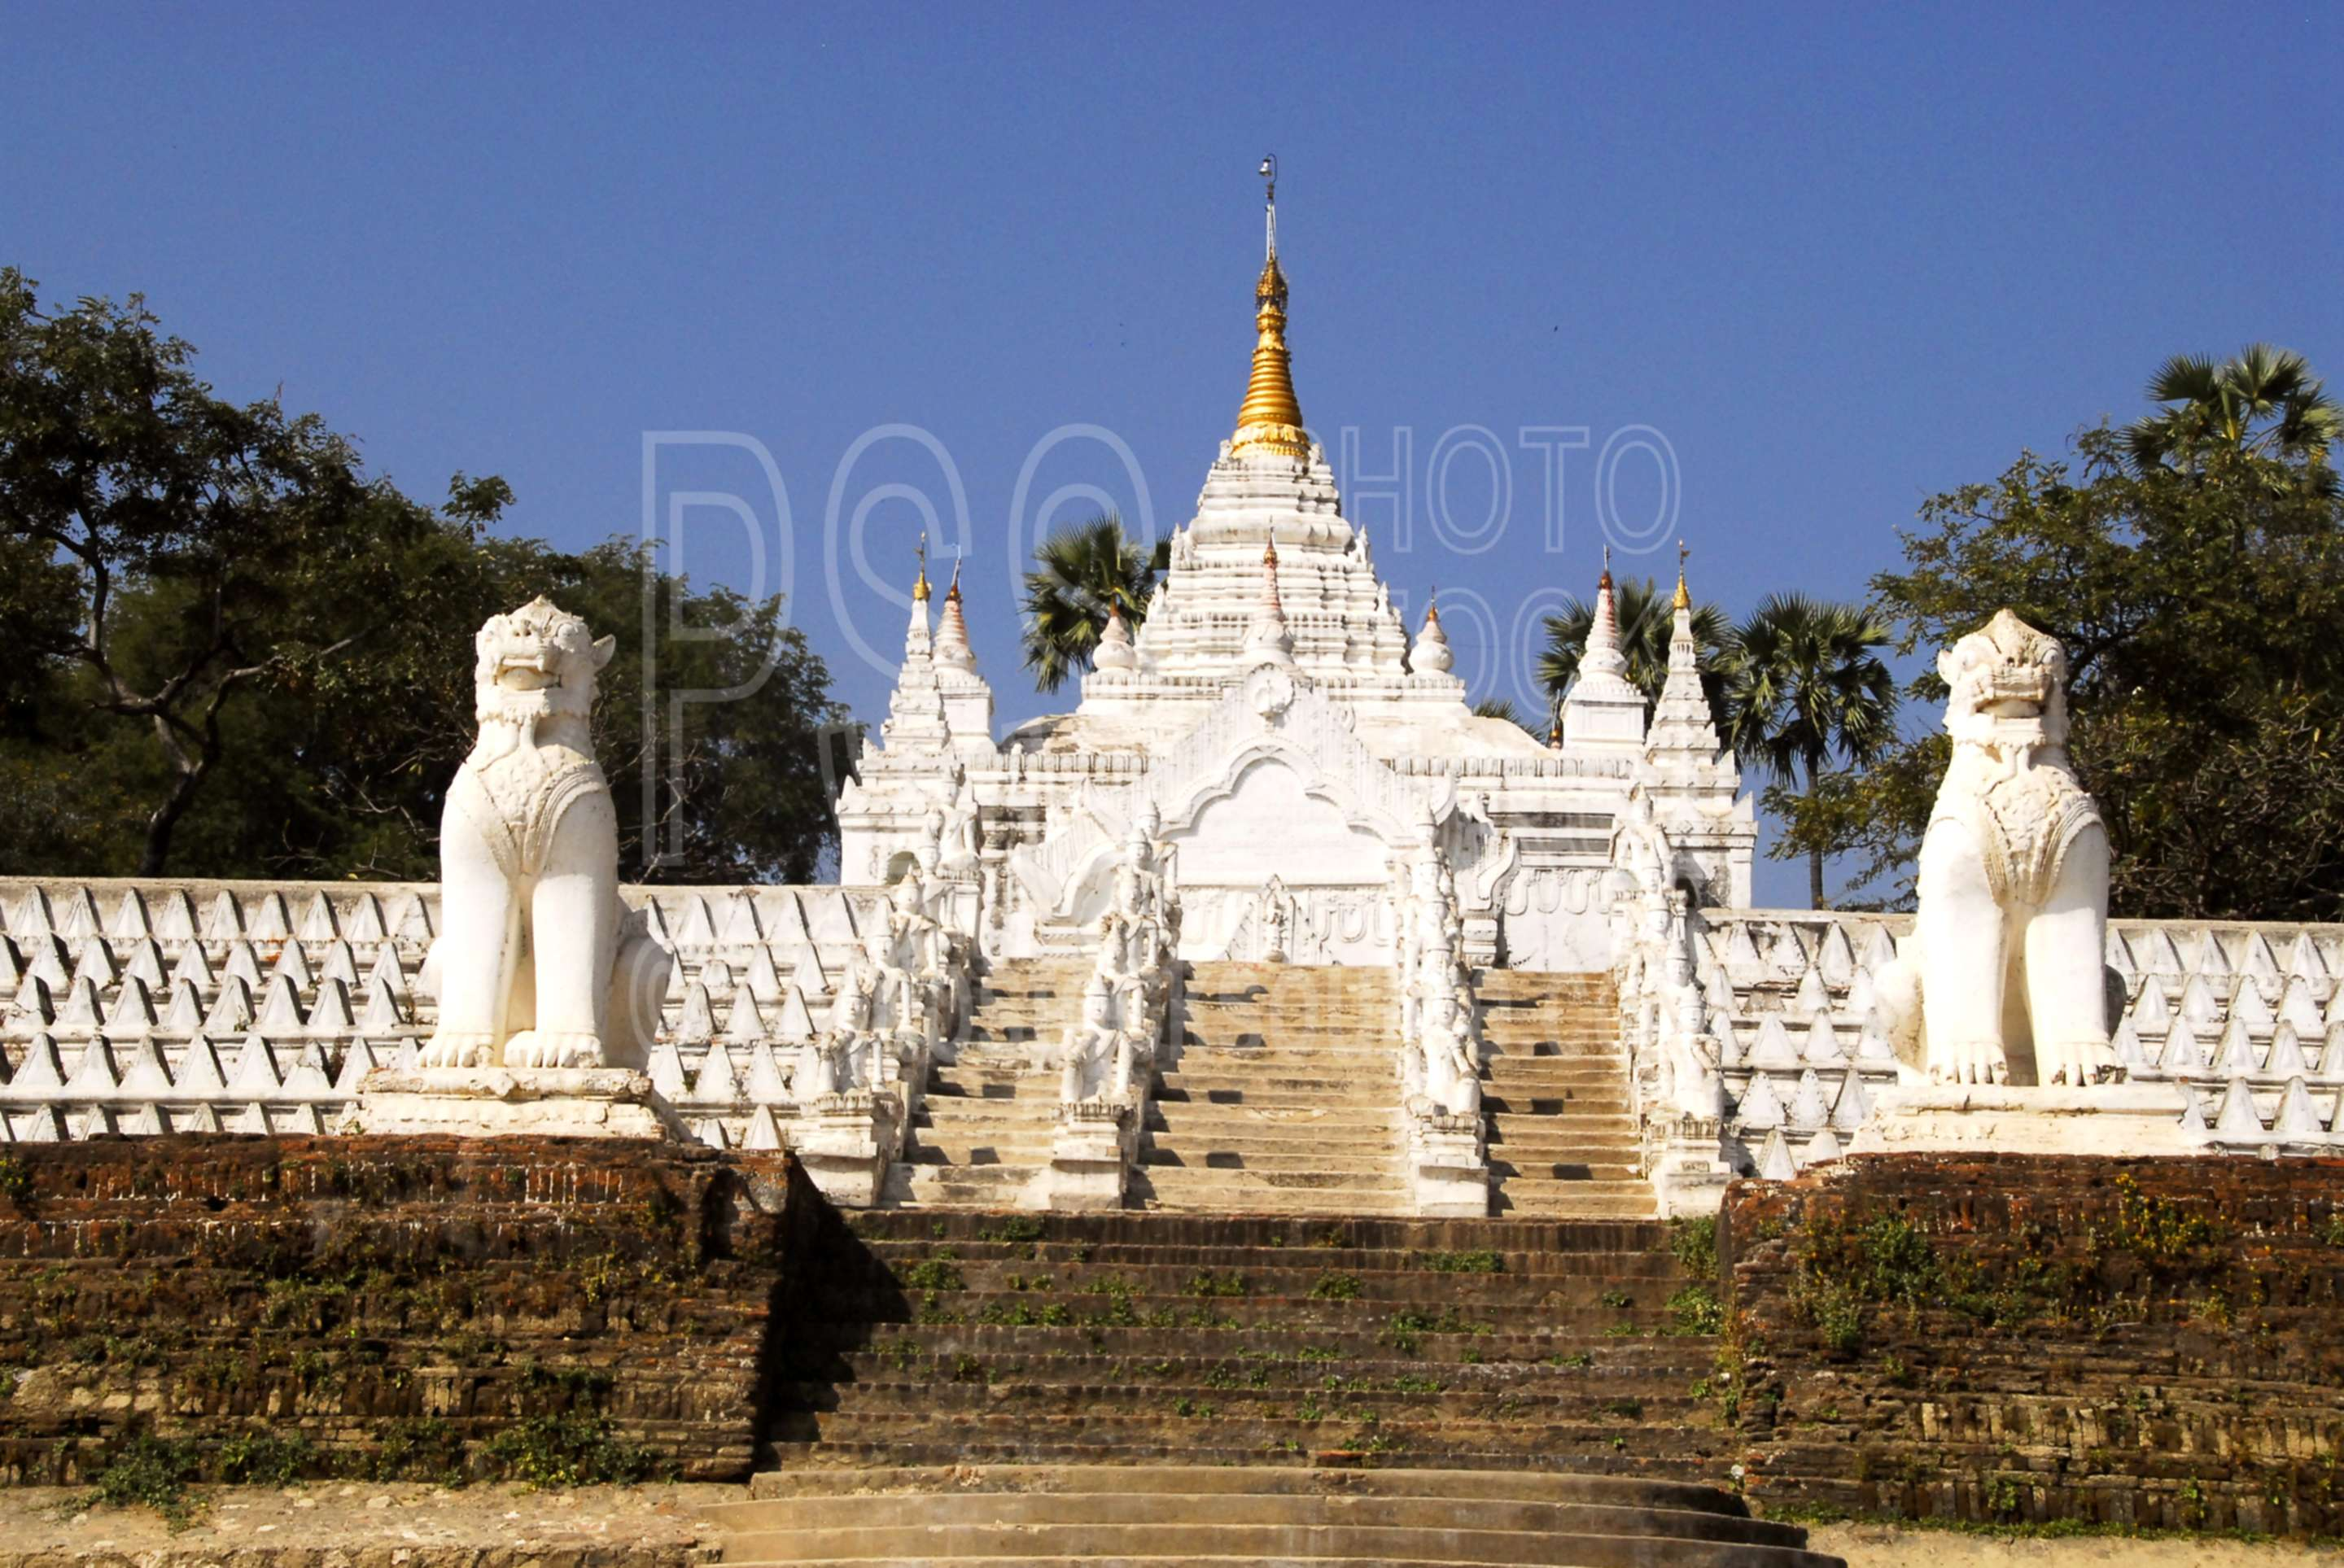 Hsinphyumae Pagoda,myanmar,temple,pagoda,buddhist,religion,myatheindan,chinthe,lions,statues